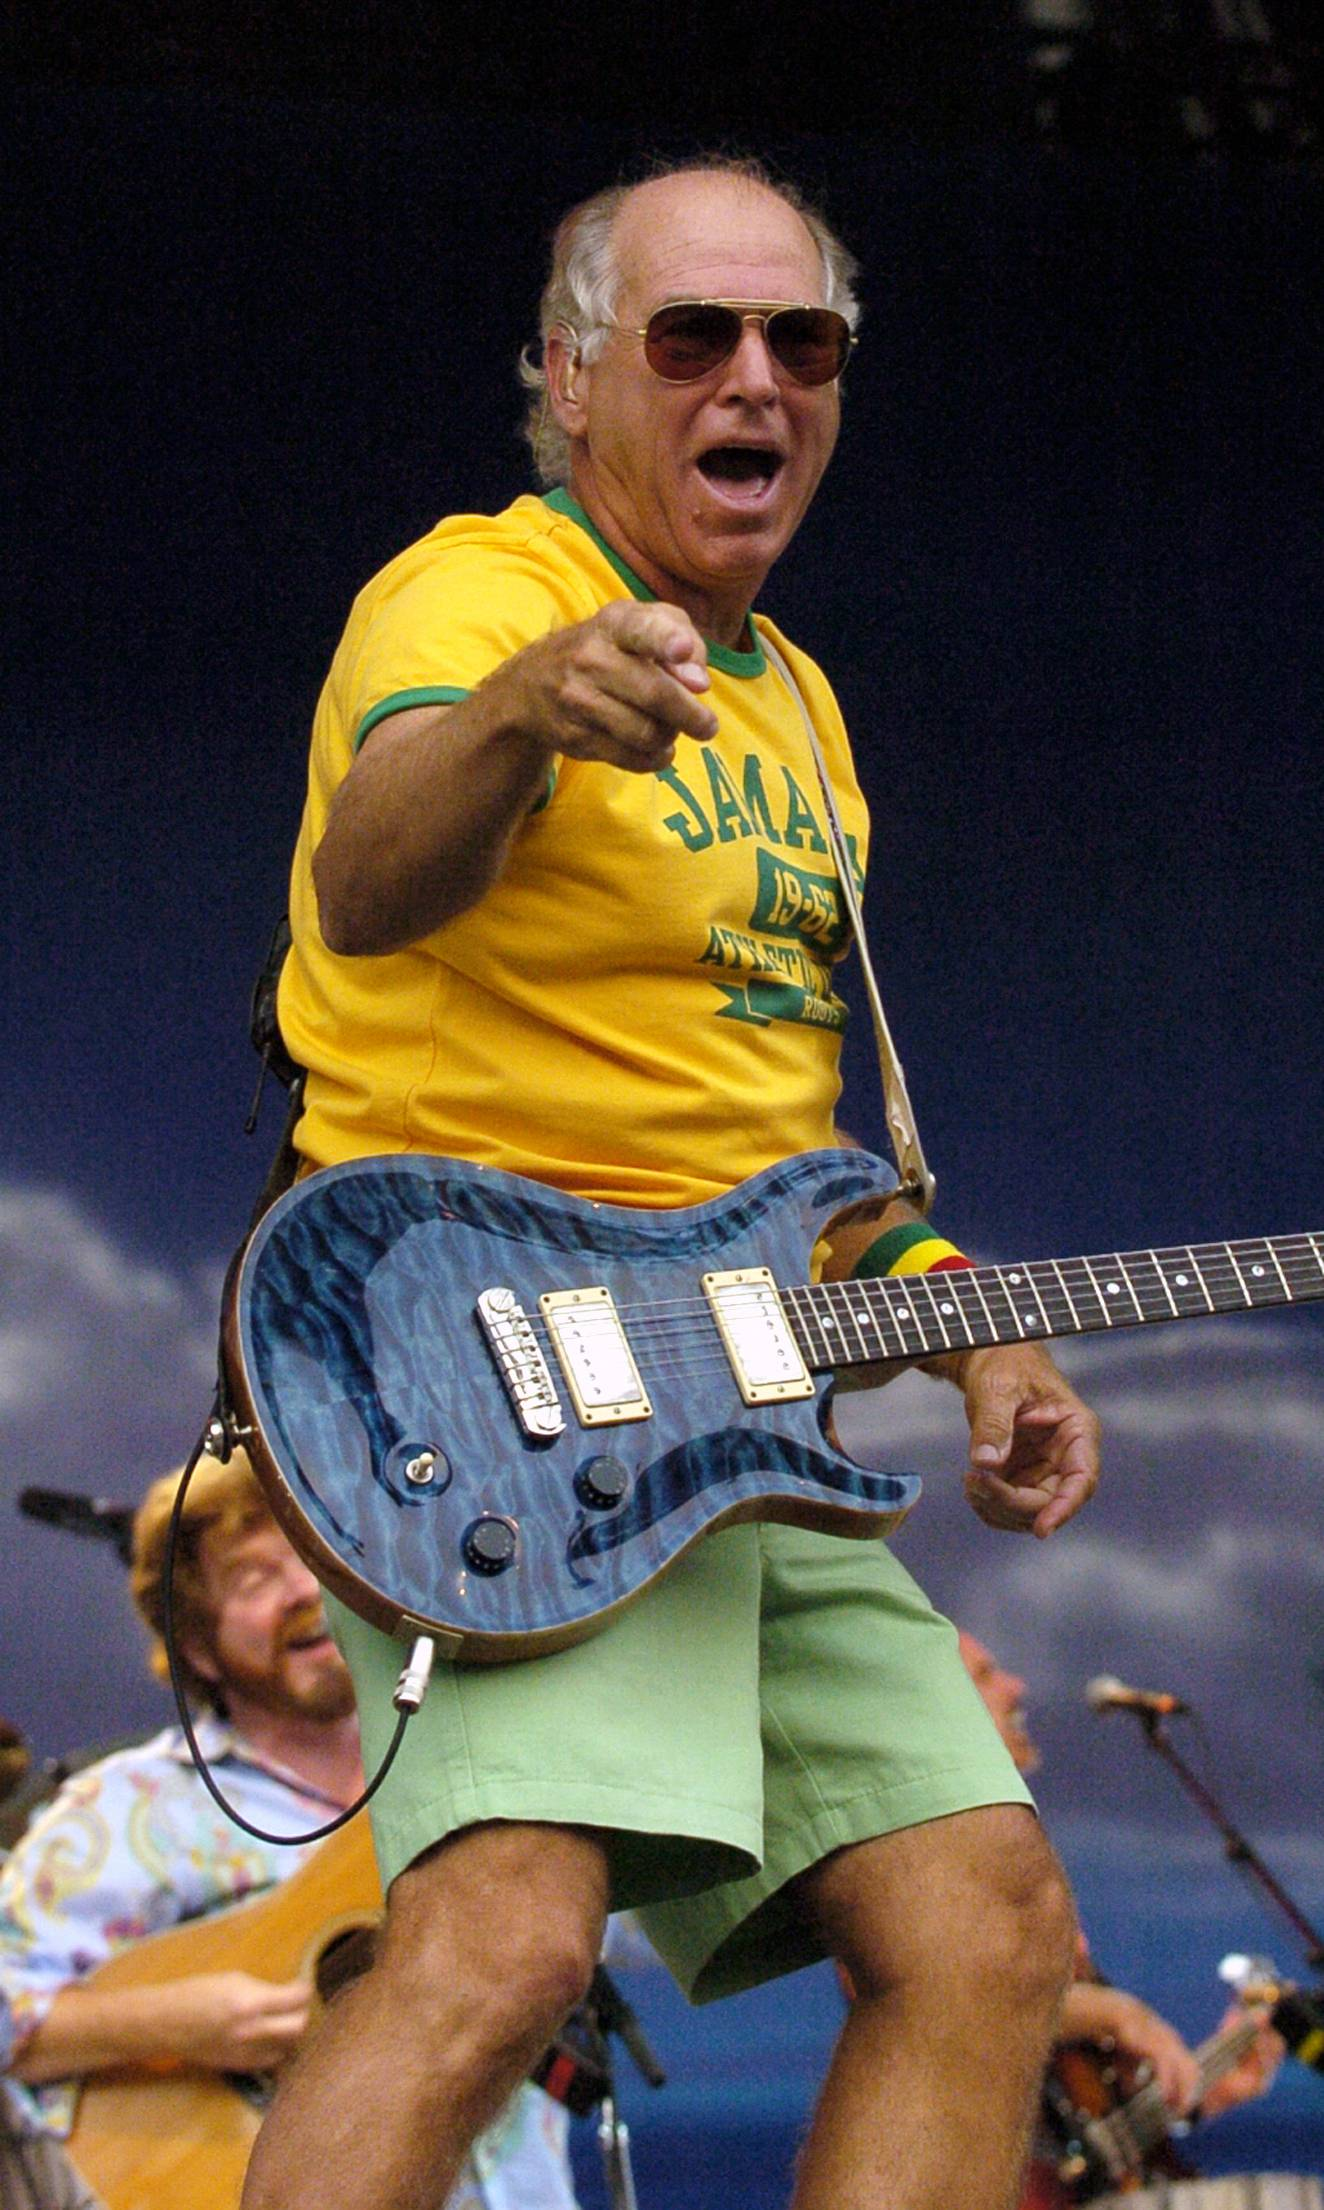 Jimmy Buffet performs in concert at the First Midwest Bank Amphitheatre in Tinley Park at 8 p.m. Saturday, June 28.